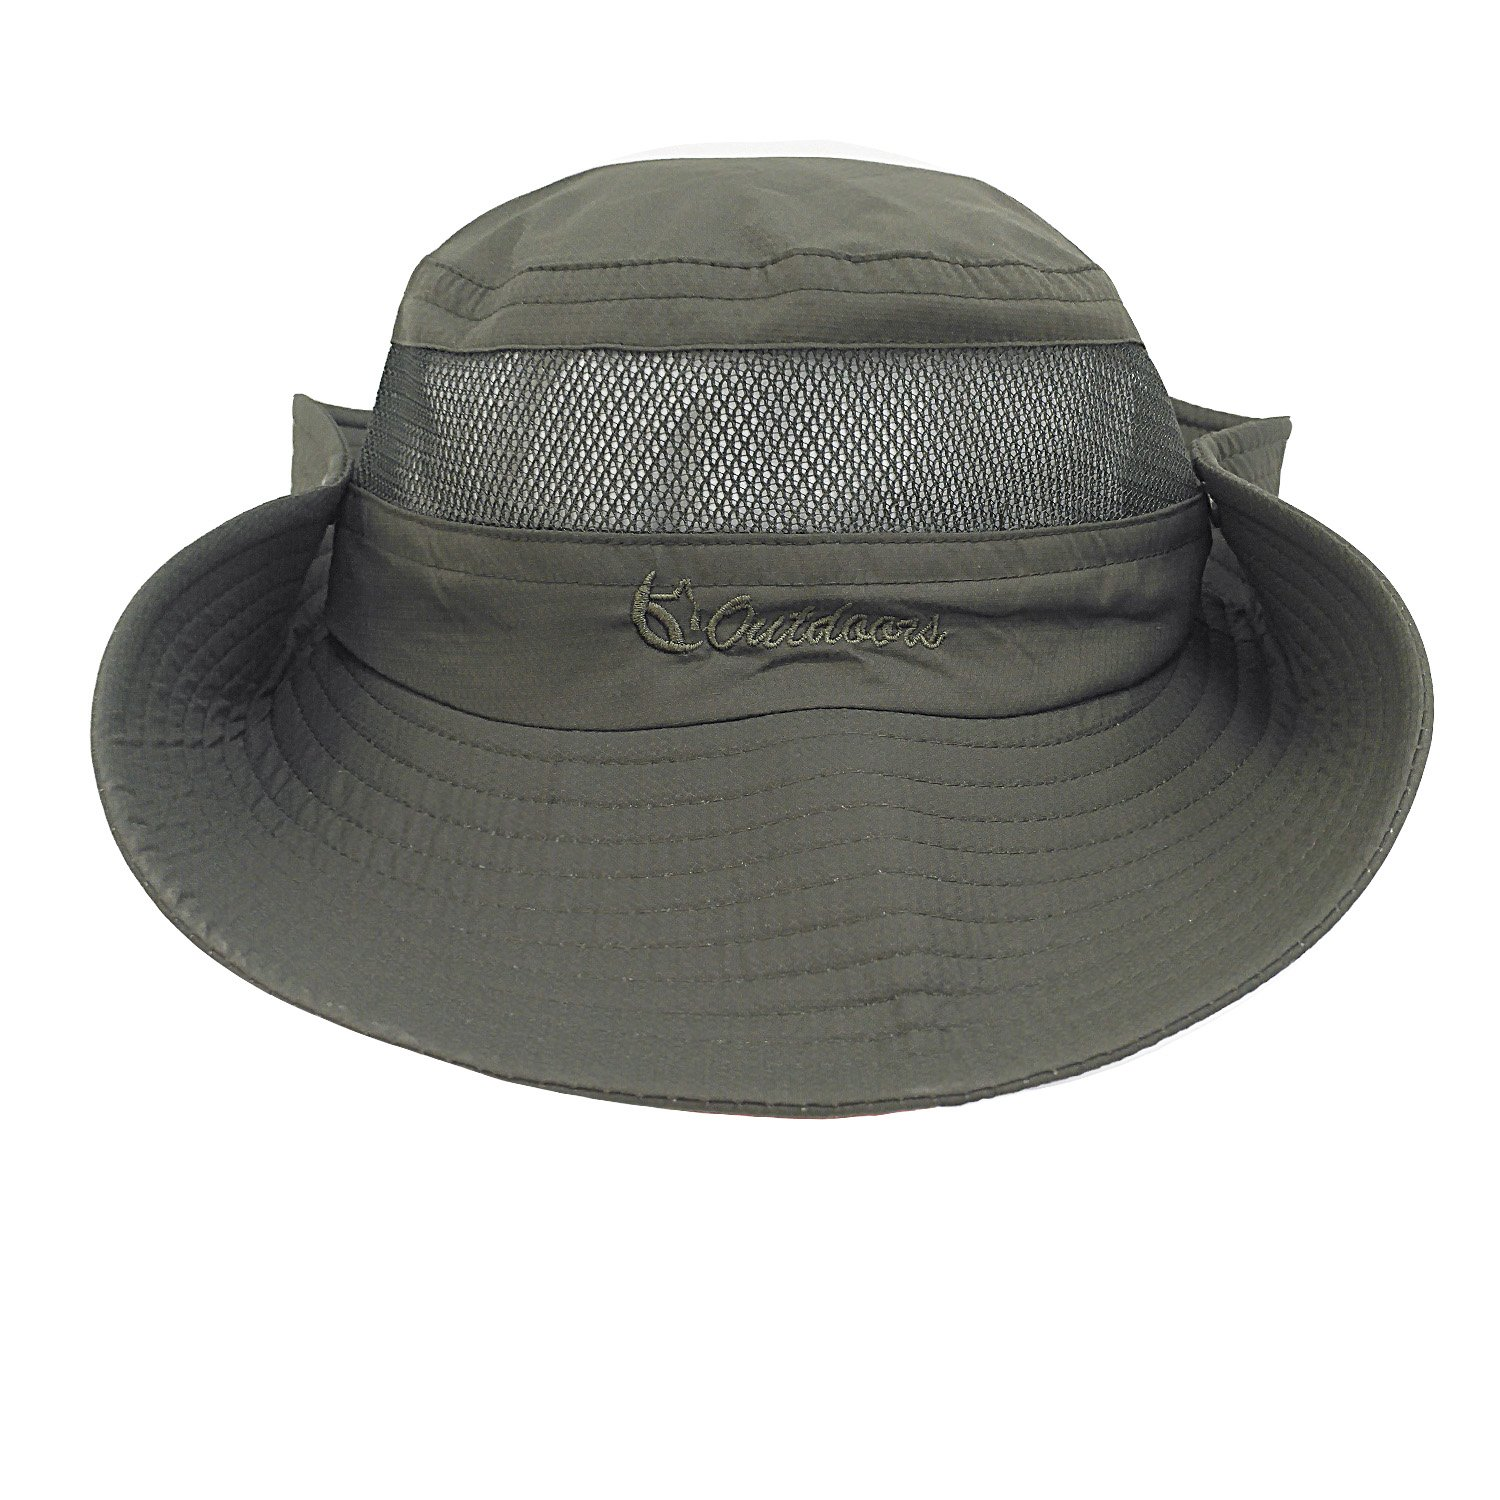 21c84dbe18a Senker unisex outdoor bucket mesh boonie fishing sun hat at amazon womens  clothing store jpg 1500x1500